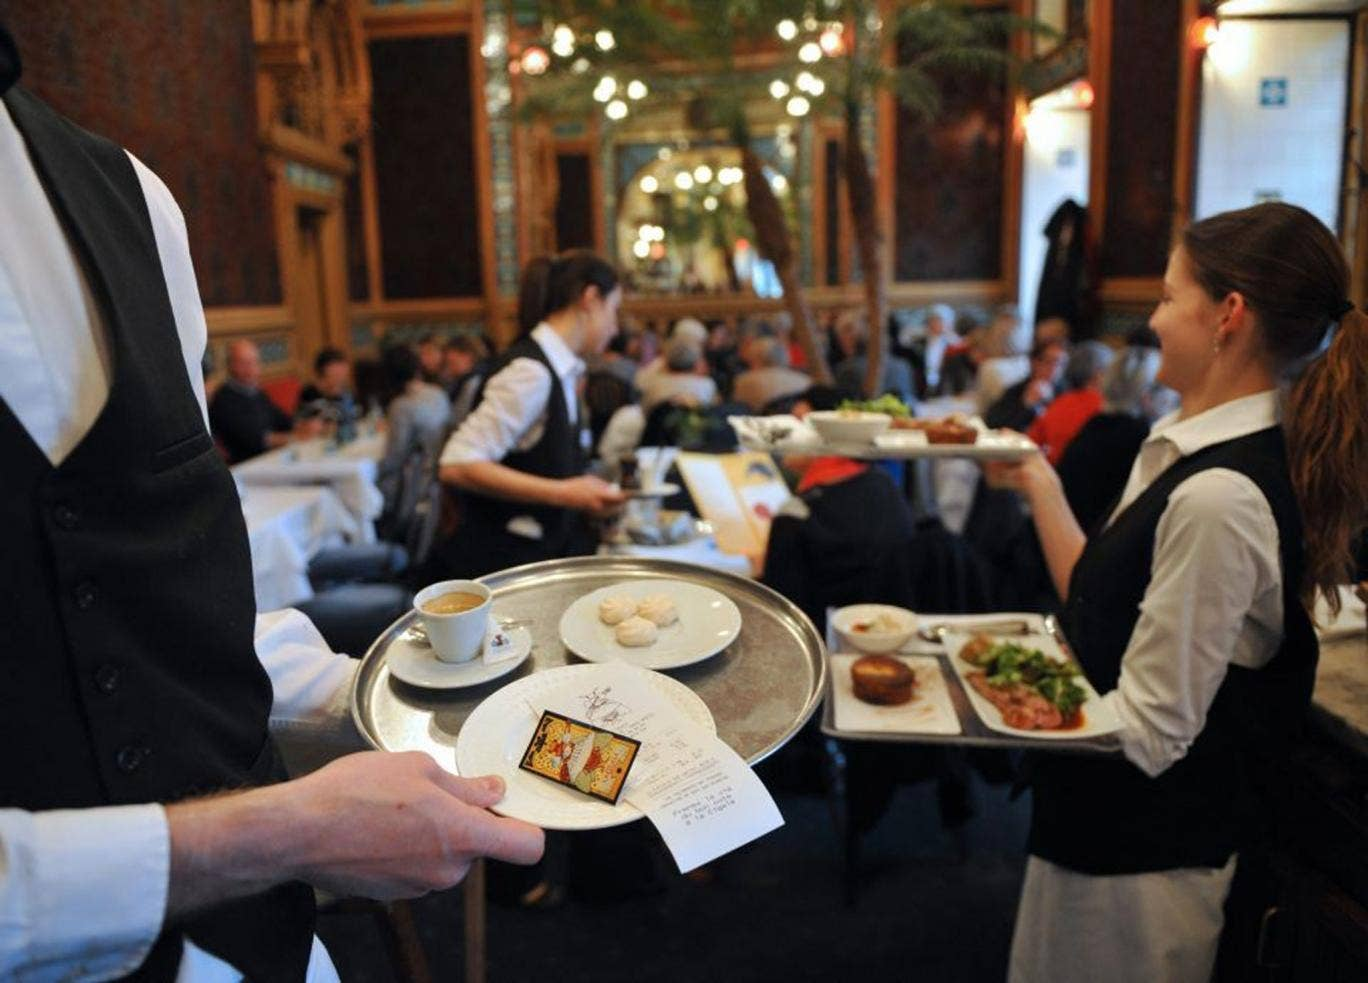 How we are cheated in restaurants: small tricks of waiters